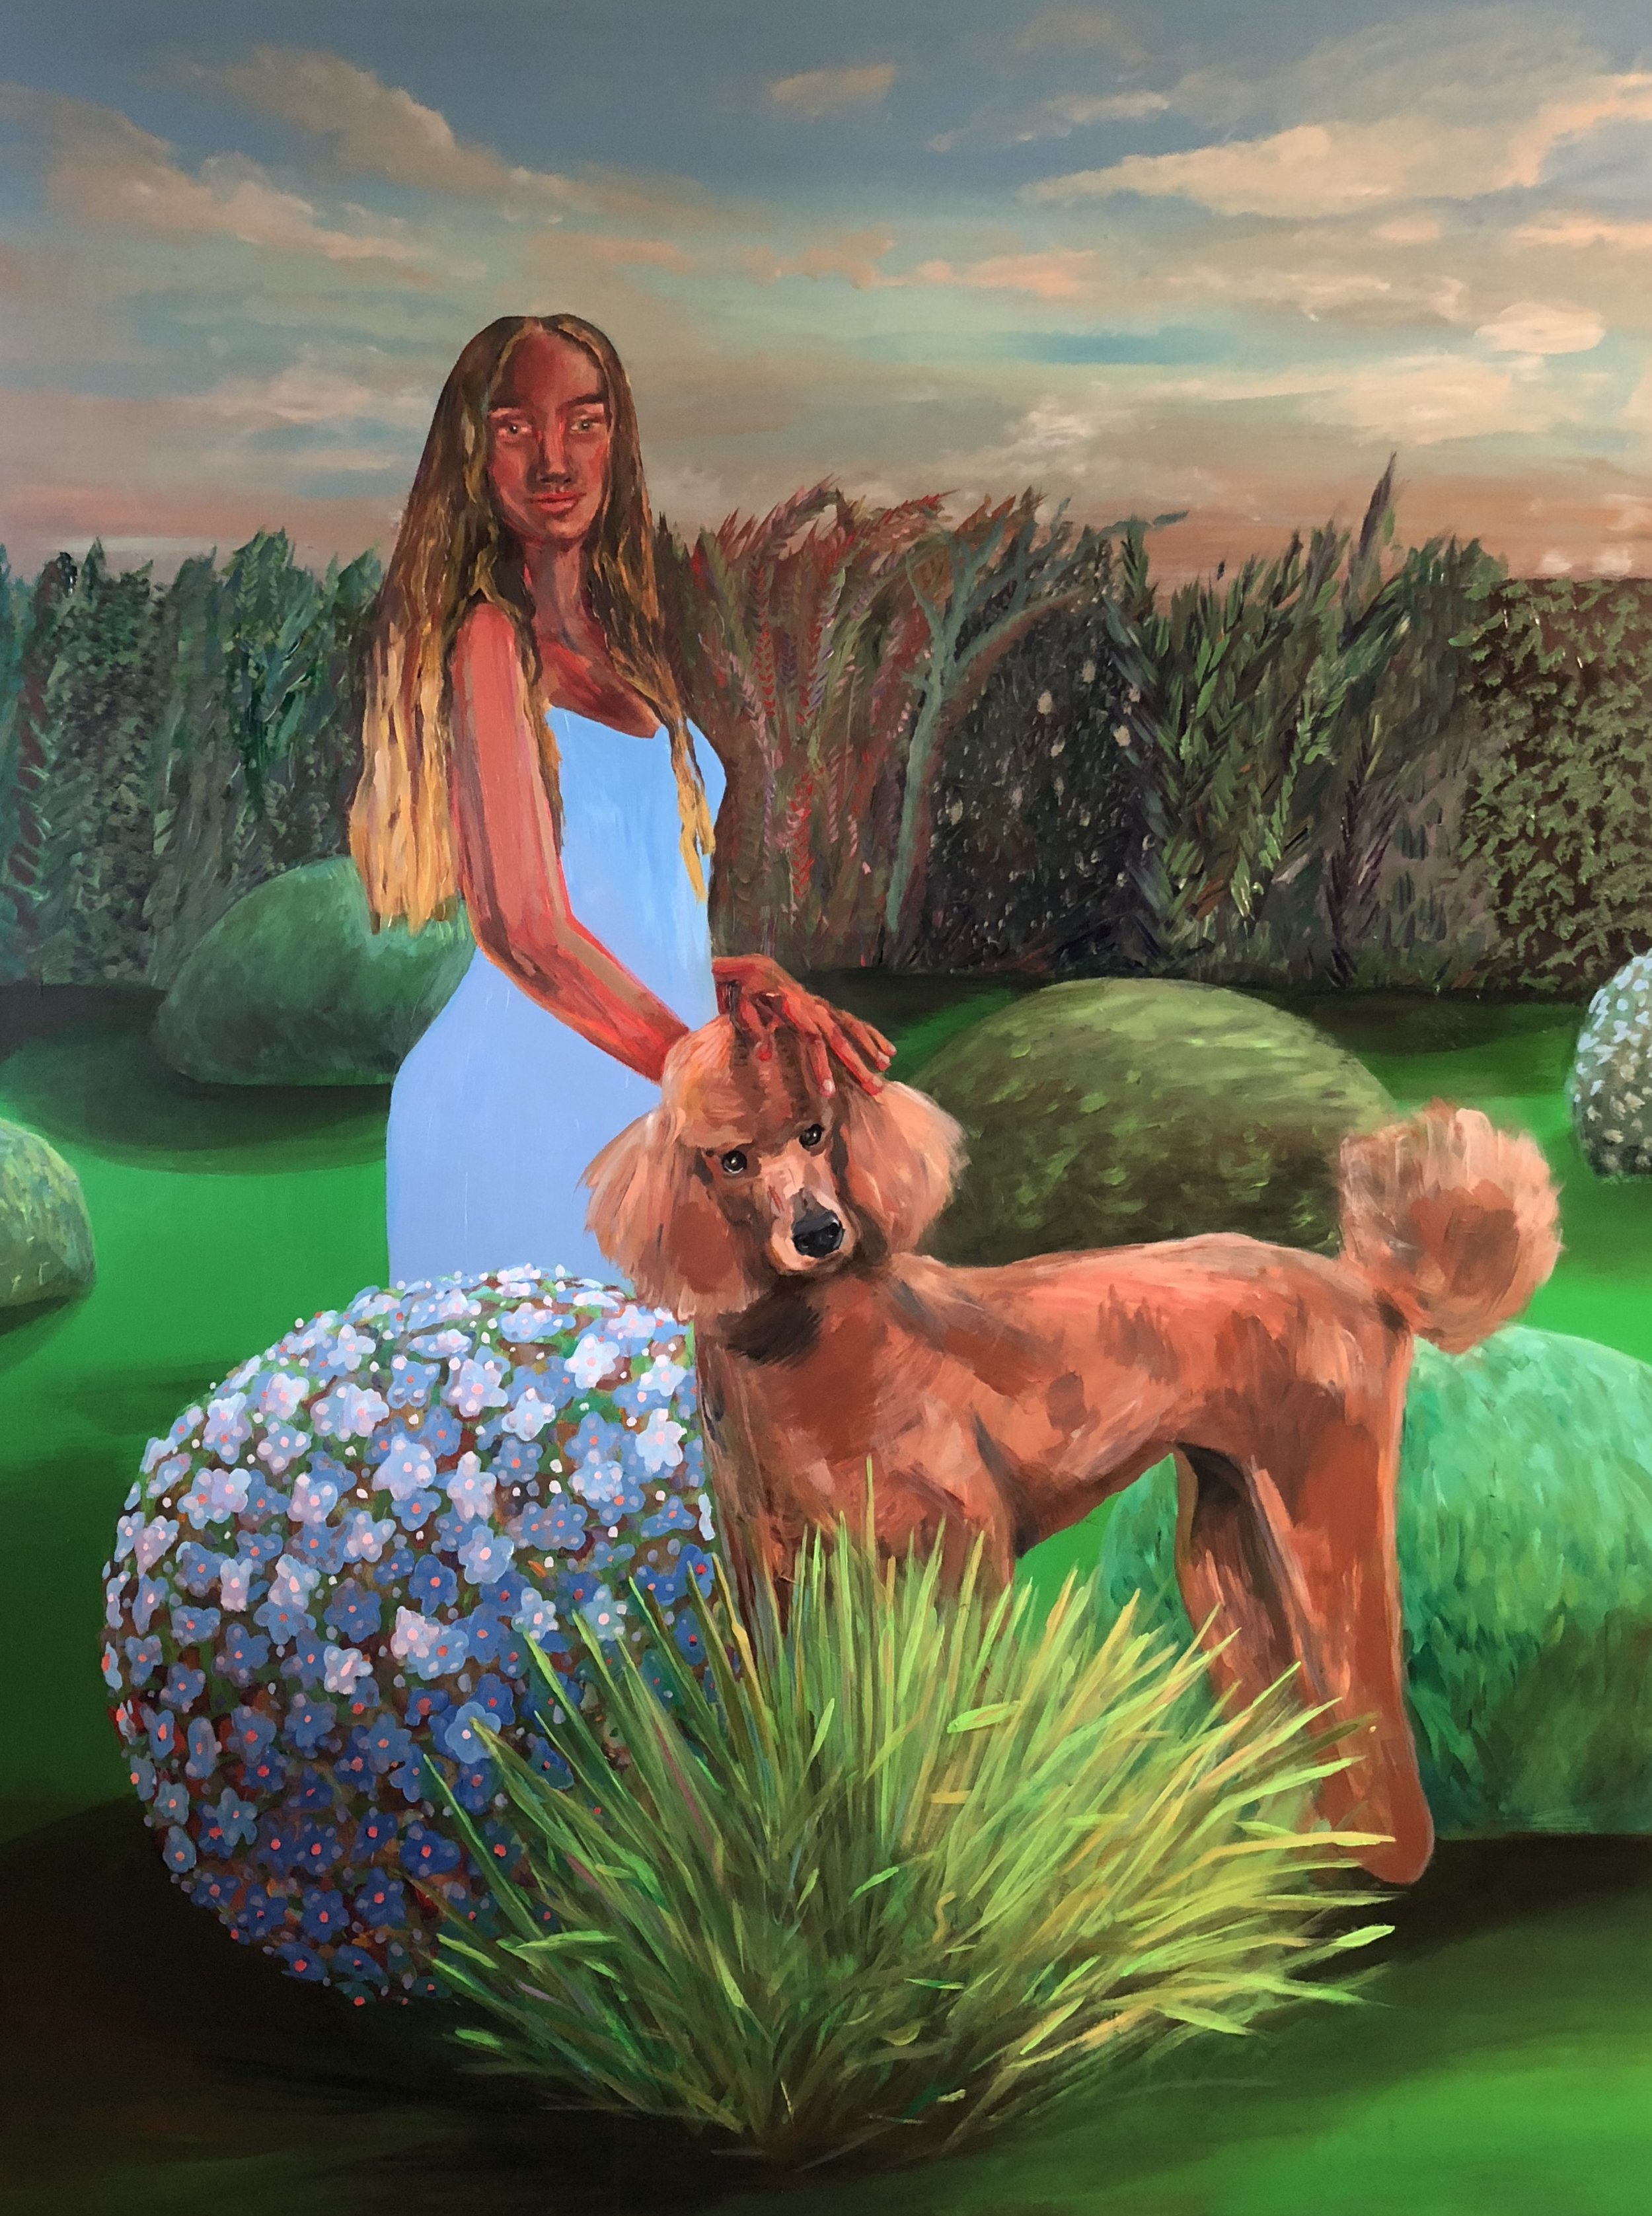 Petting the Poodle in the Garden, acrylic on panel, 40 x 48 inches, 2018